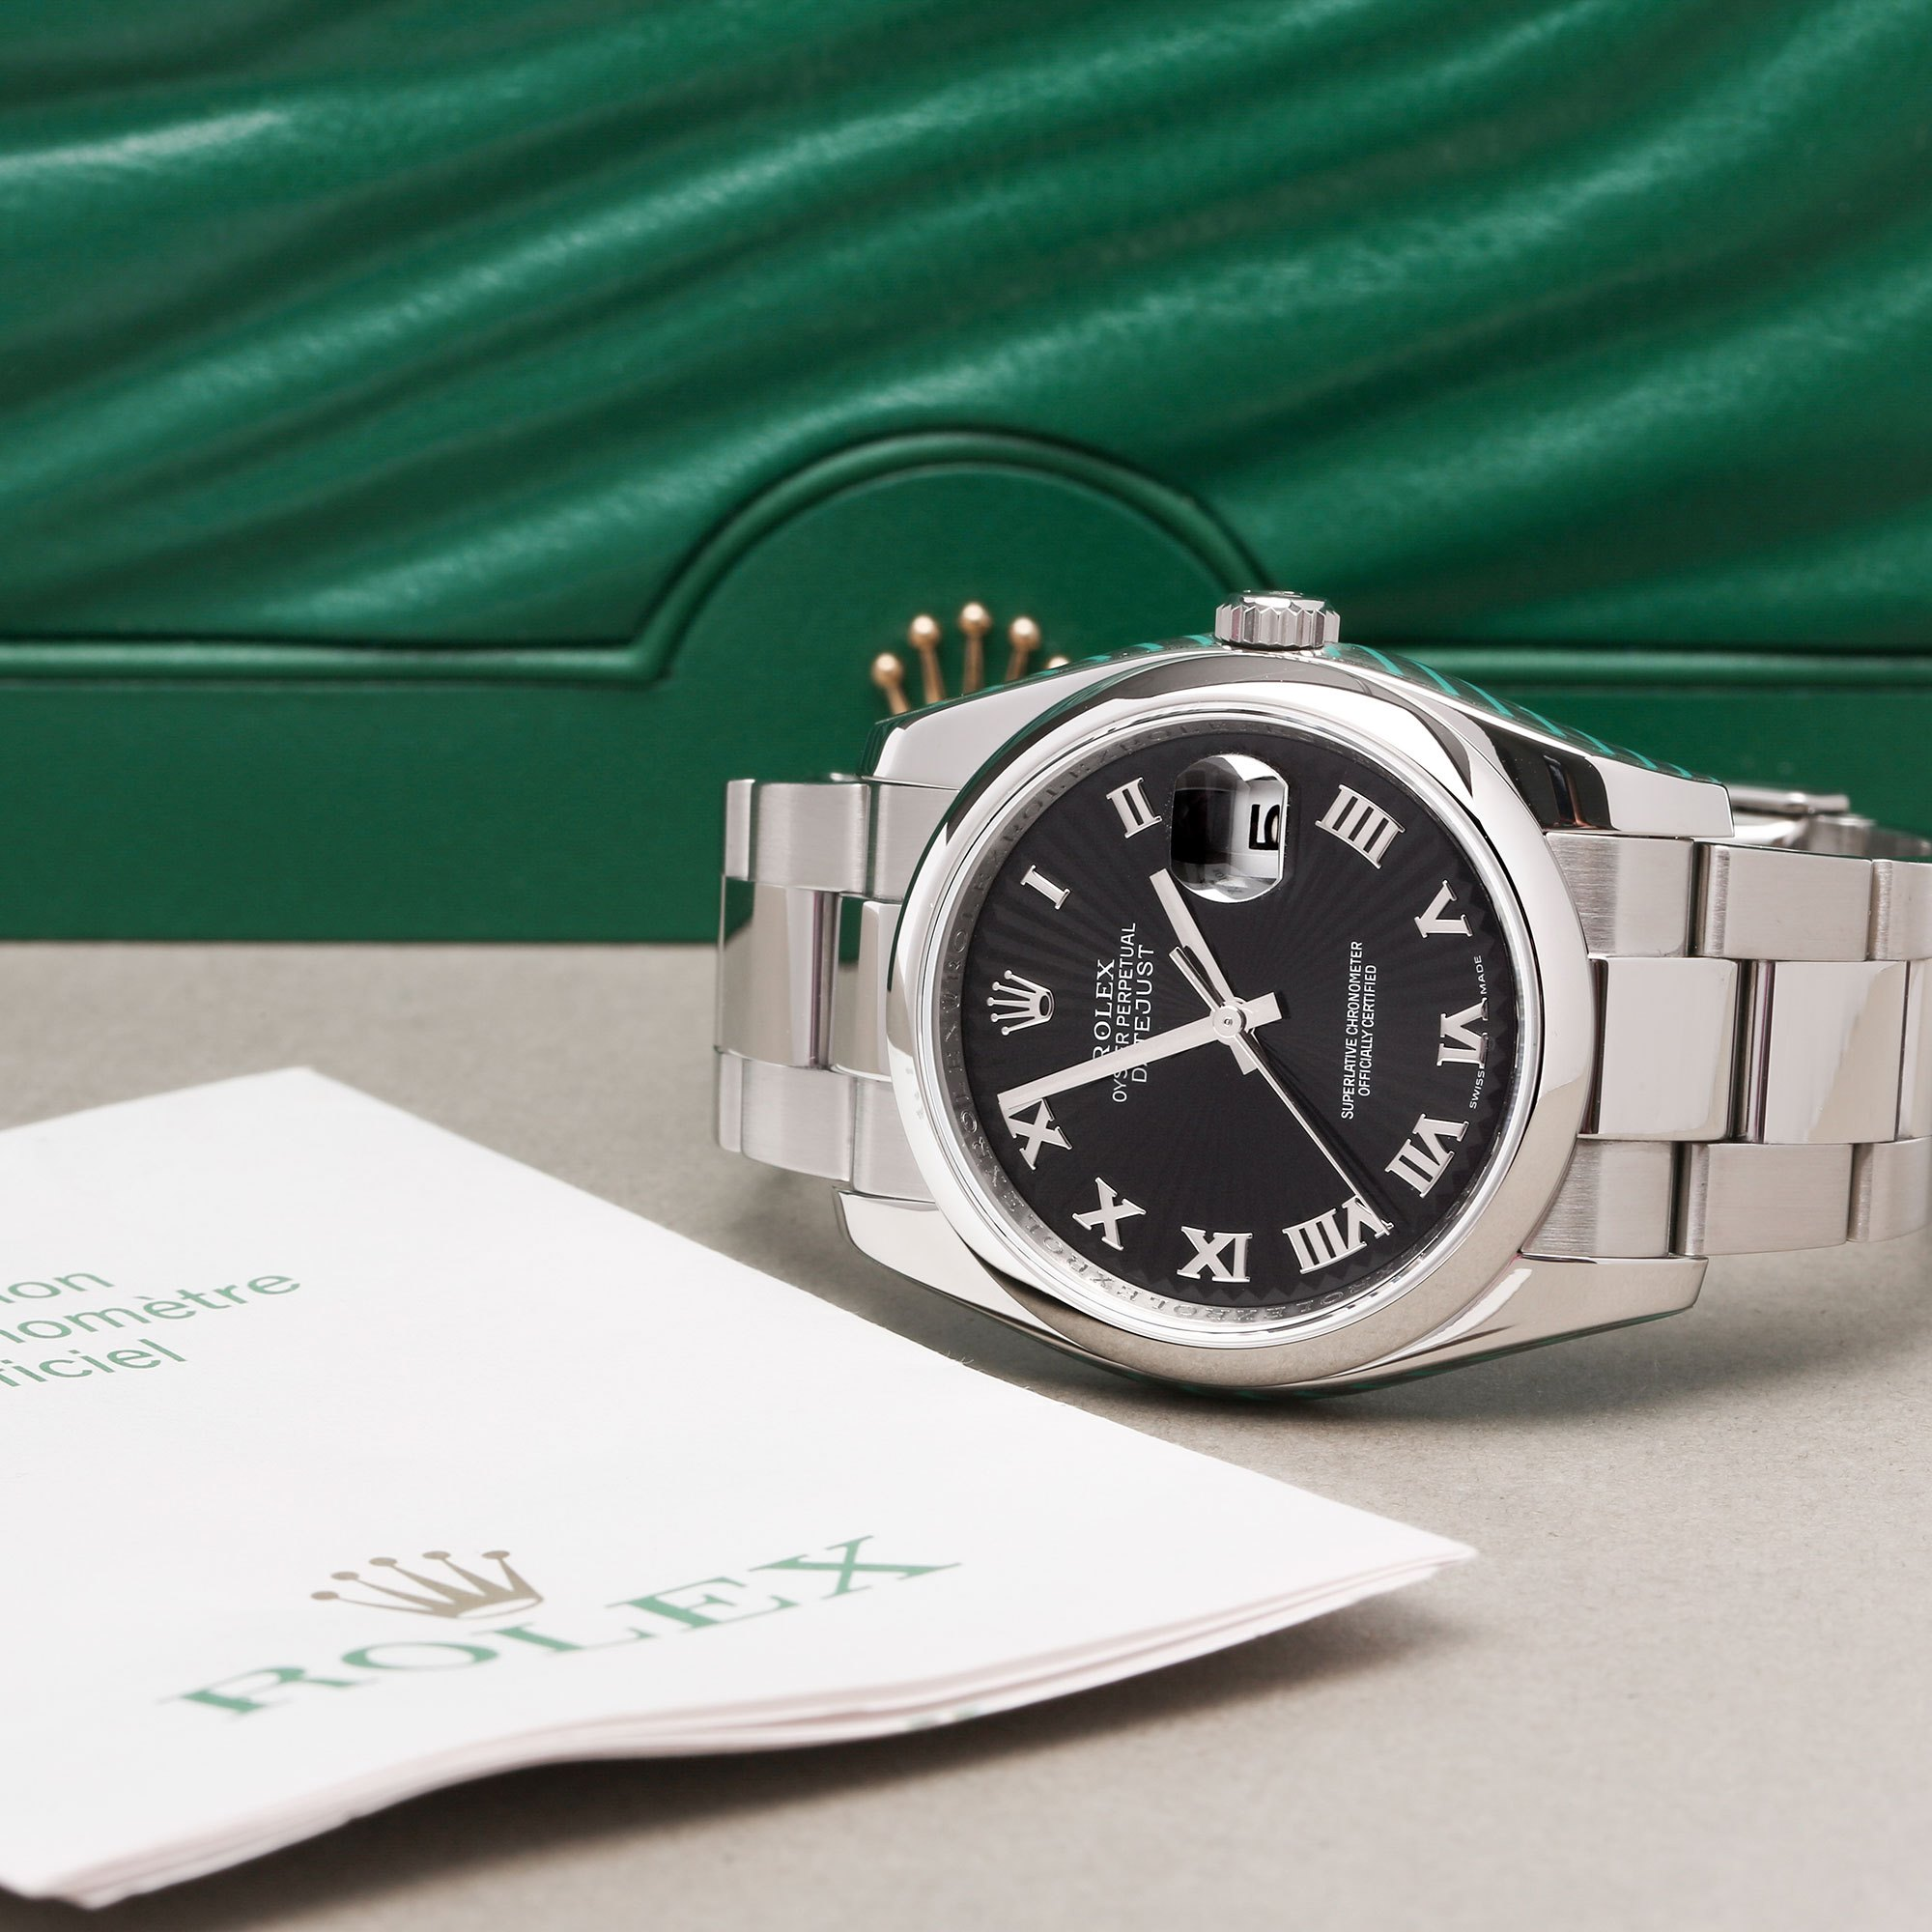 Rolex Datejust 36 116200 Men's Stainless Steel Watch - Image 2 of 12